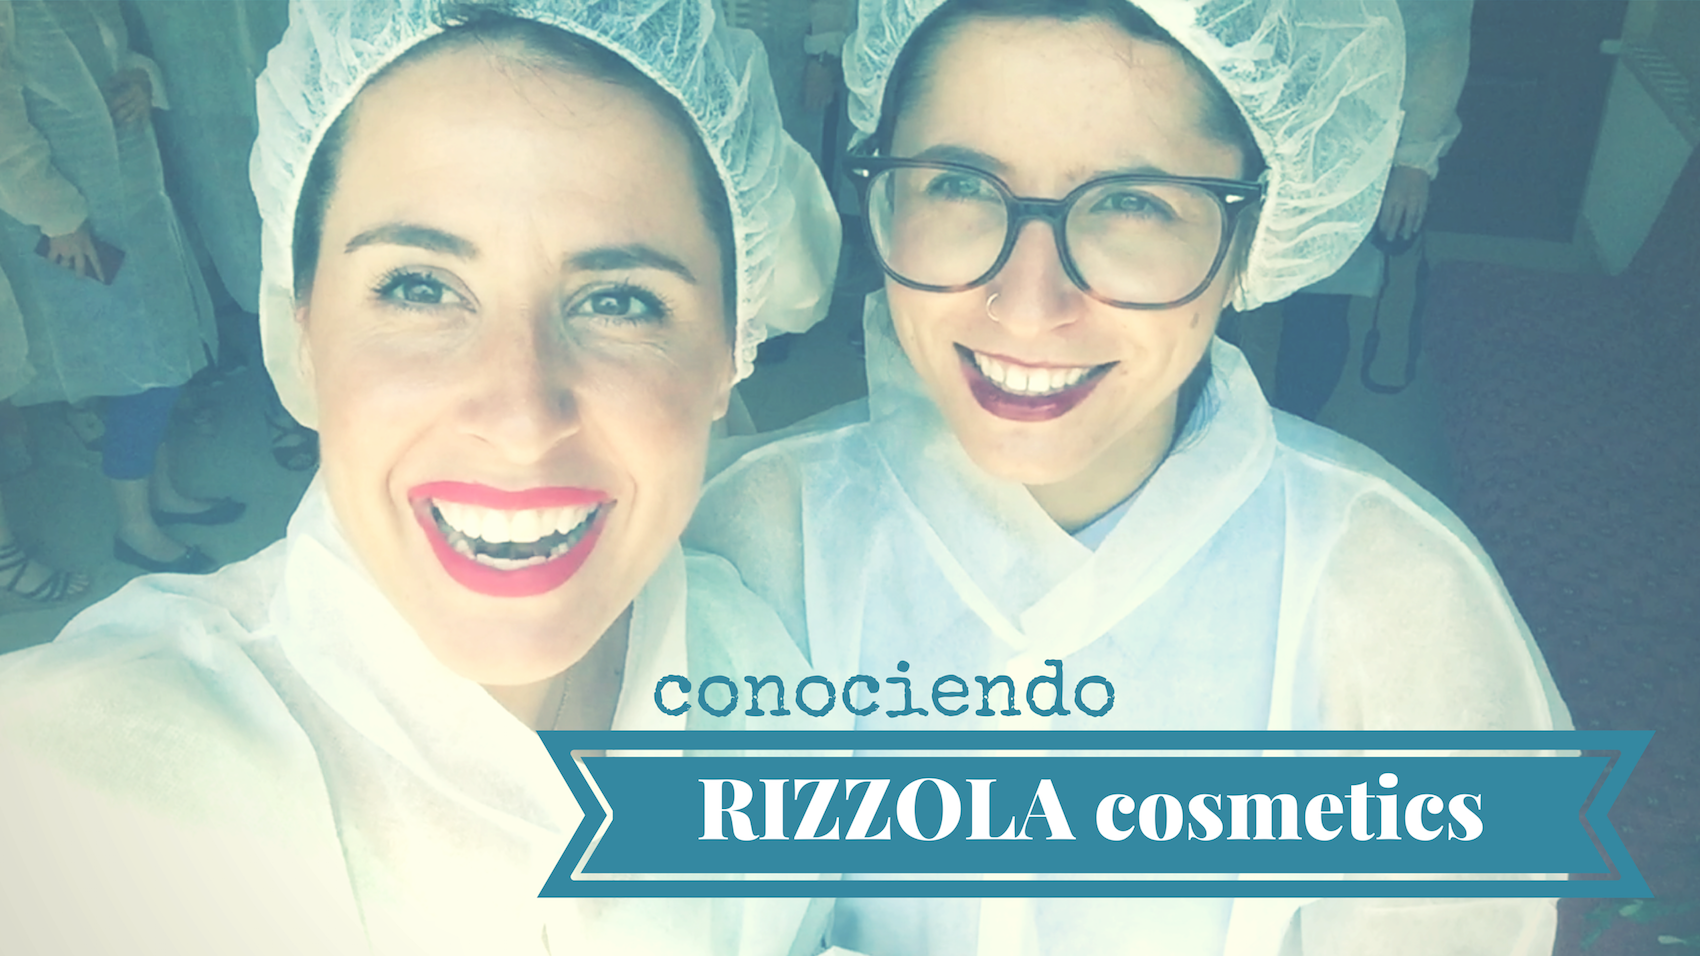 rizzola-cosmetics-video-happybloggers-descalzaporelparque-youtube